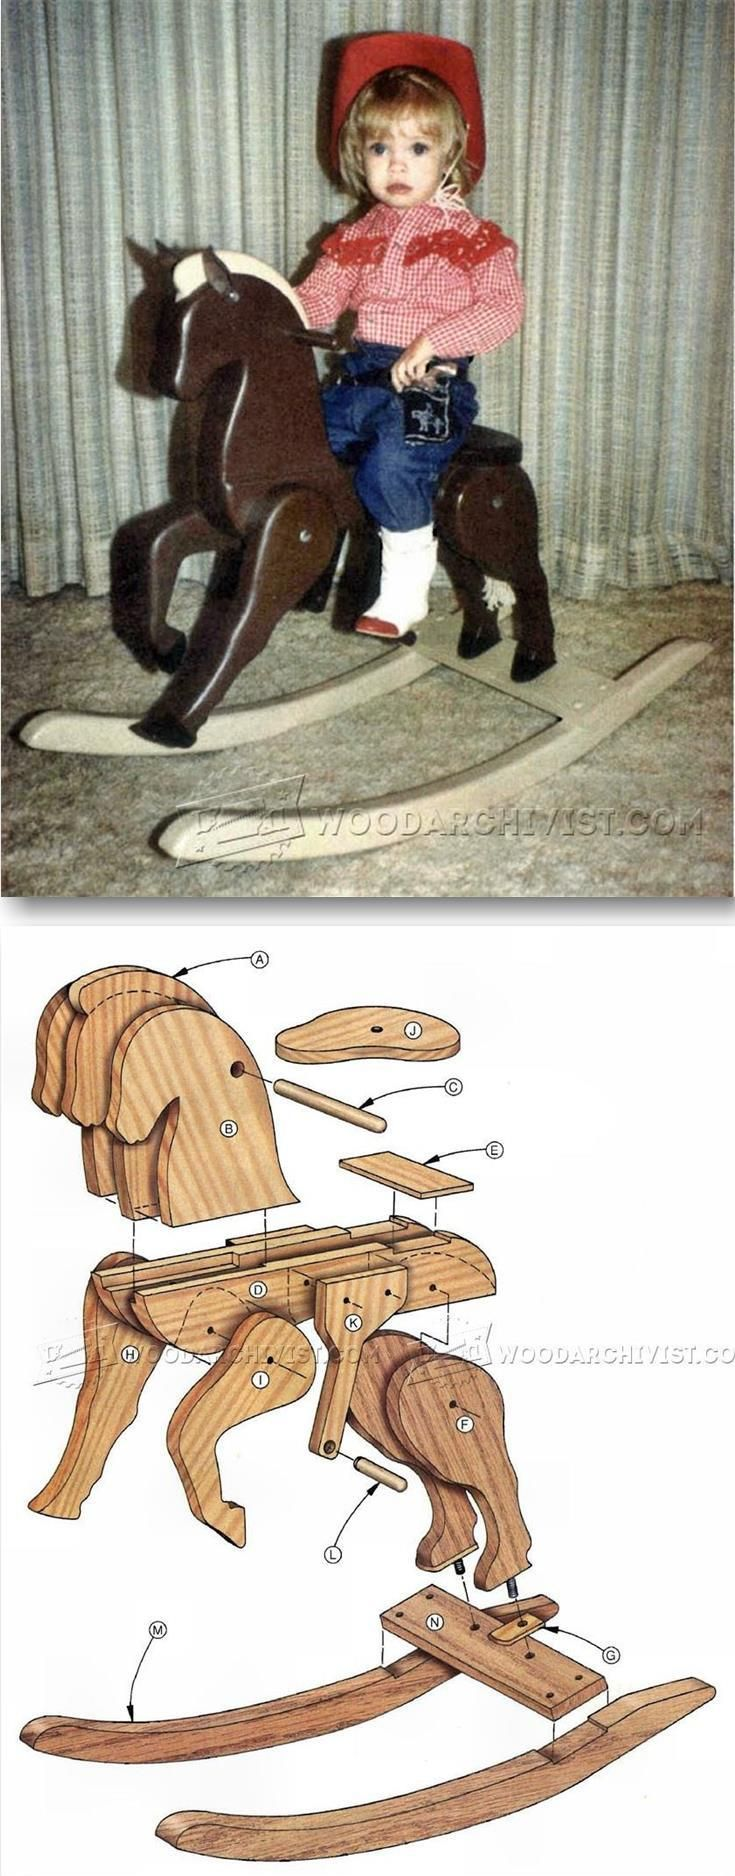 Wooden Rocking Horse Plans - Children's Woodworking Plans and Projects   WoodArchivist.com